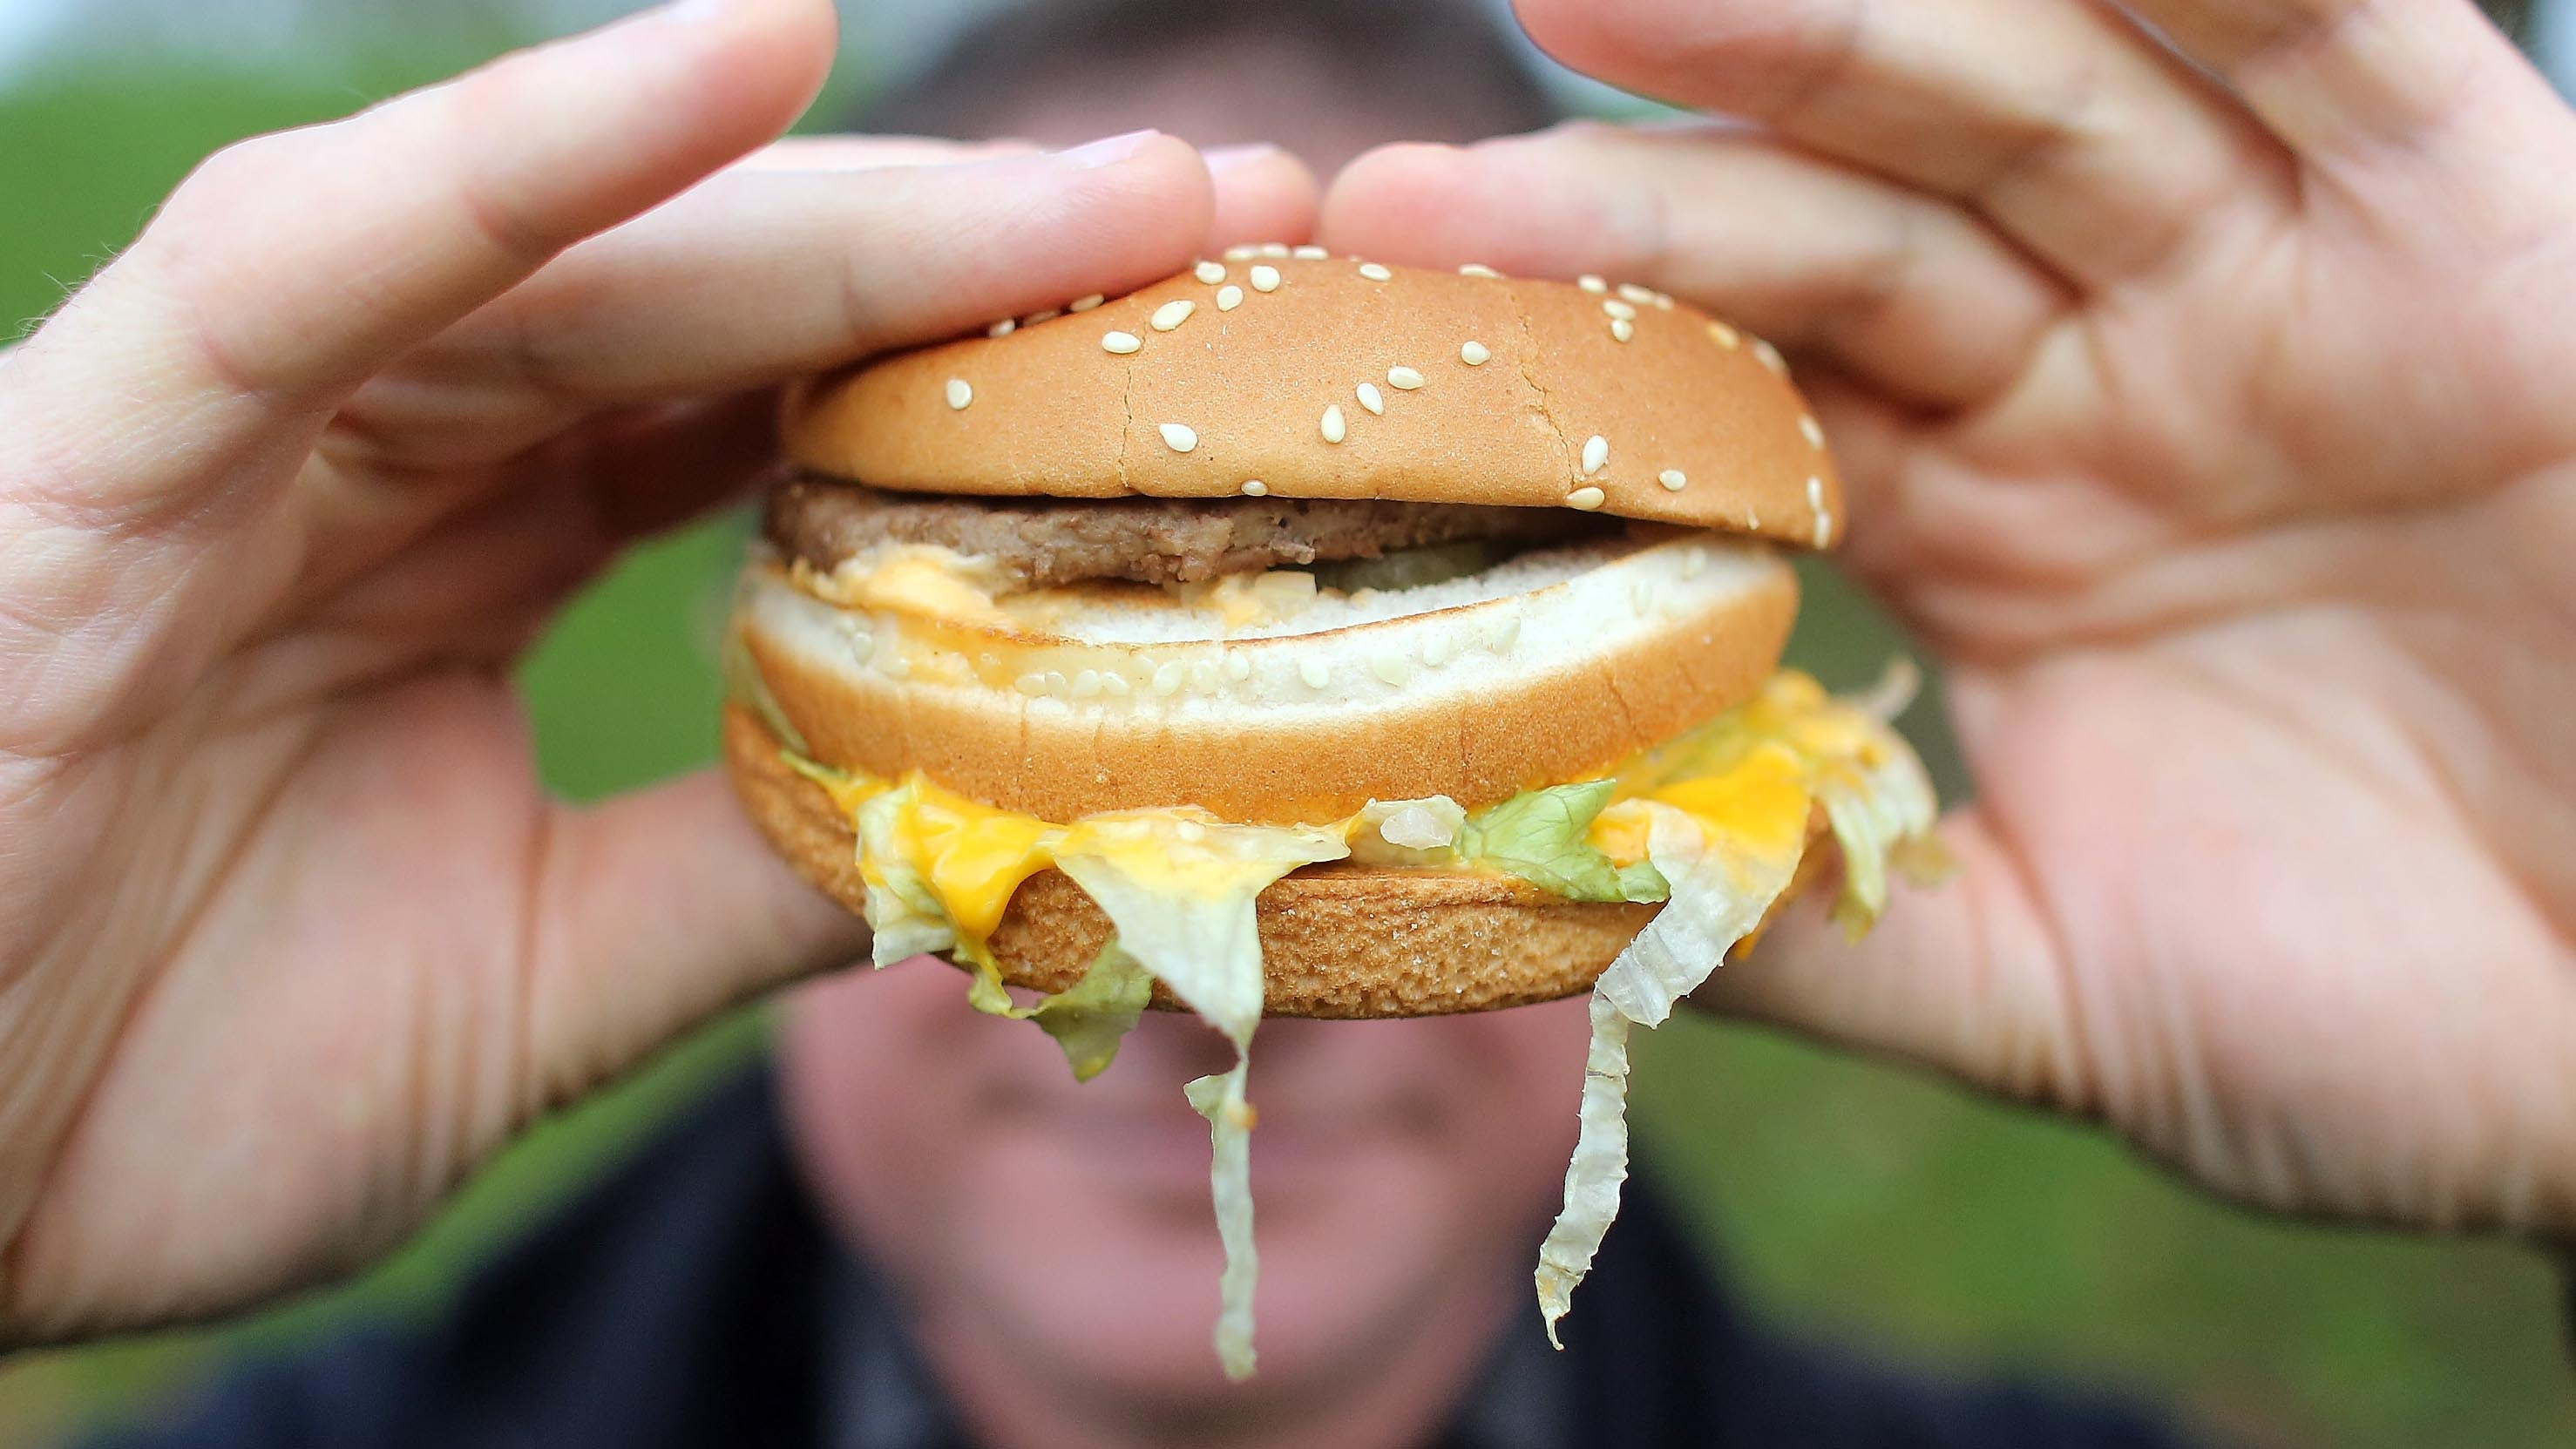 Fast Food Makes Up 11% of Our Total Calories as a Nation